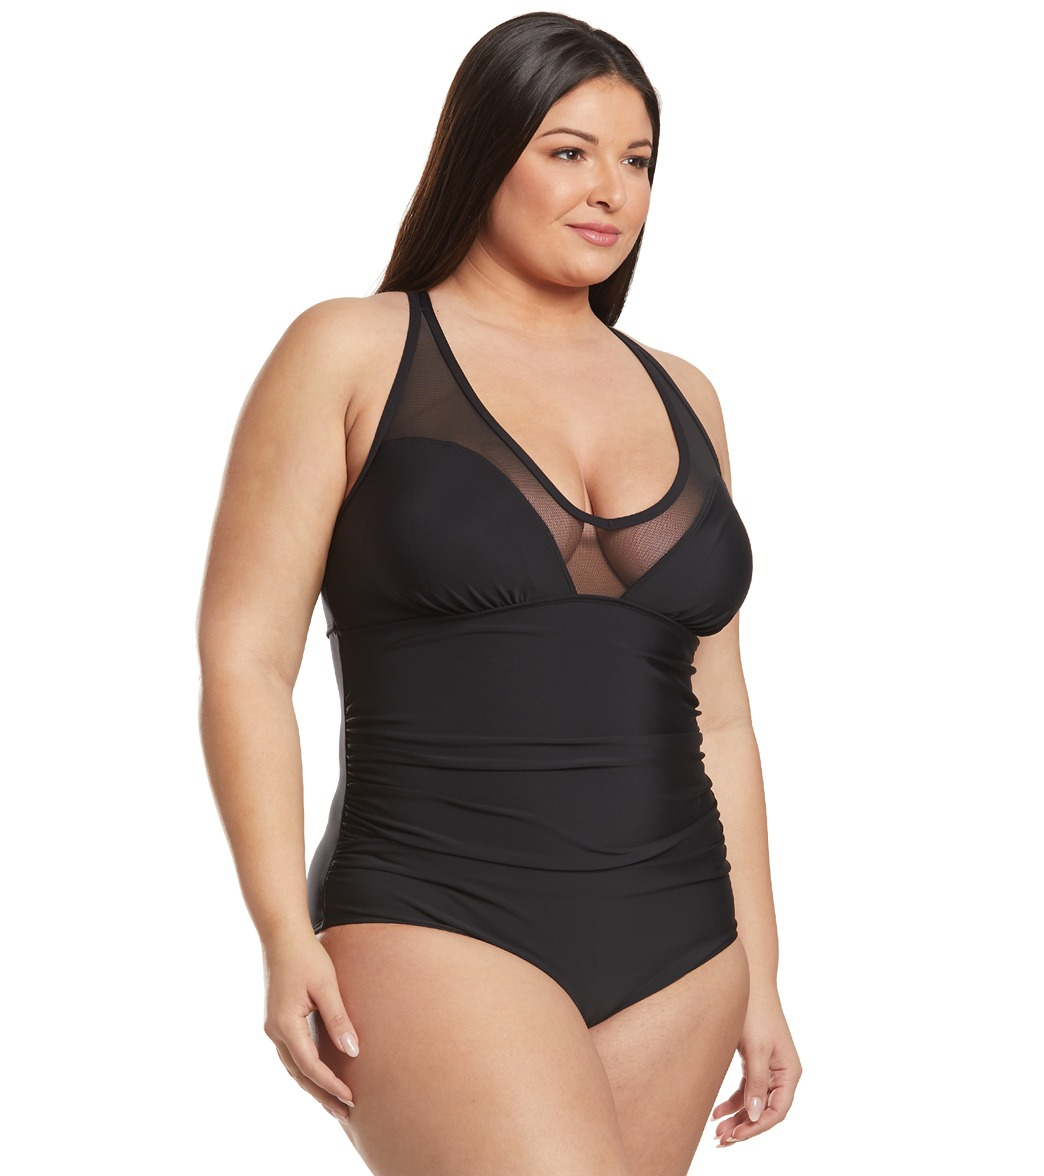 48ff79ff5fd Speedo Plus Size V-Neck Mesh One Piece Swimsuit at SwimOutlet.com ...